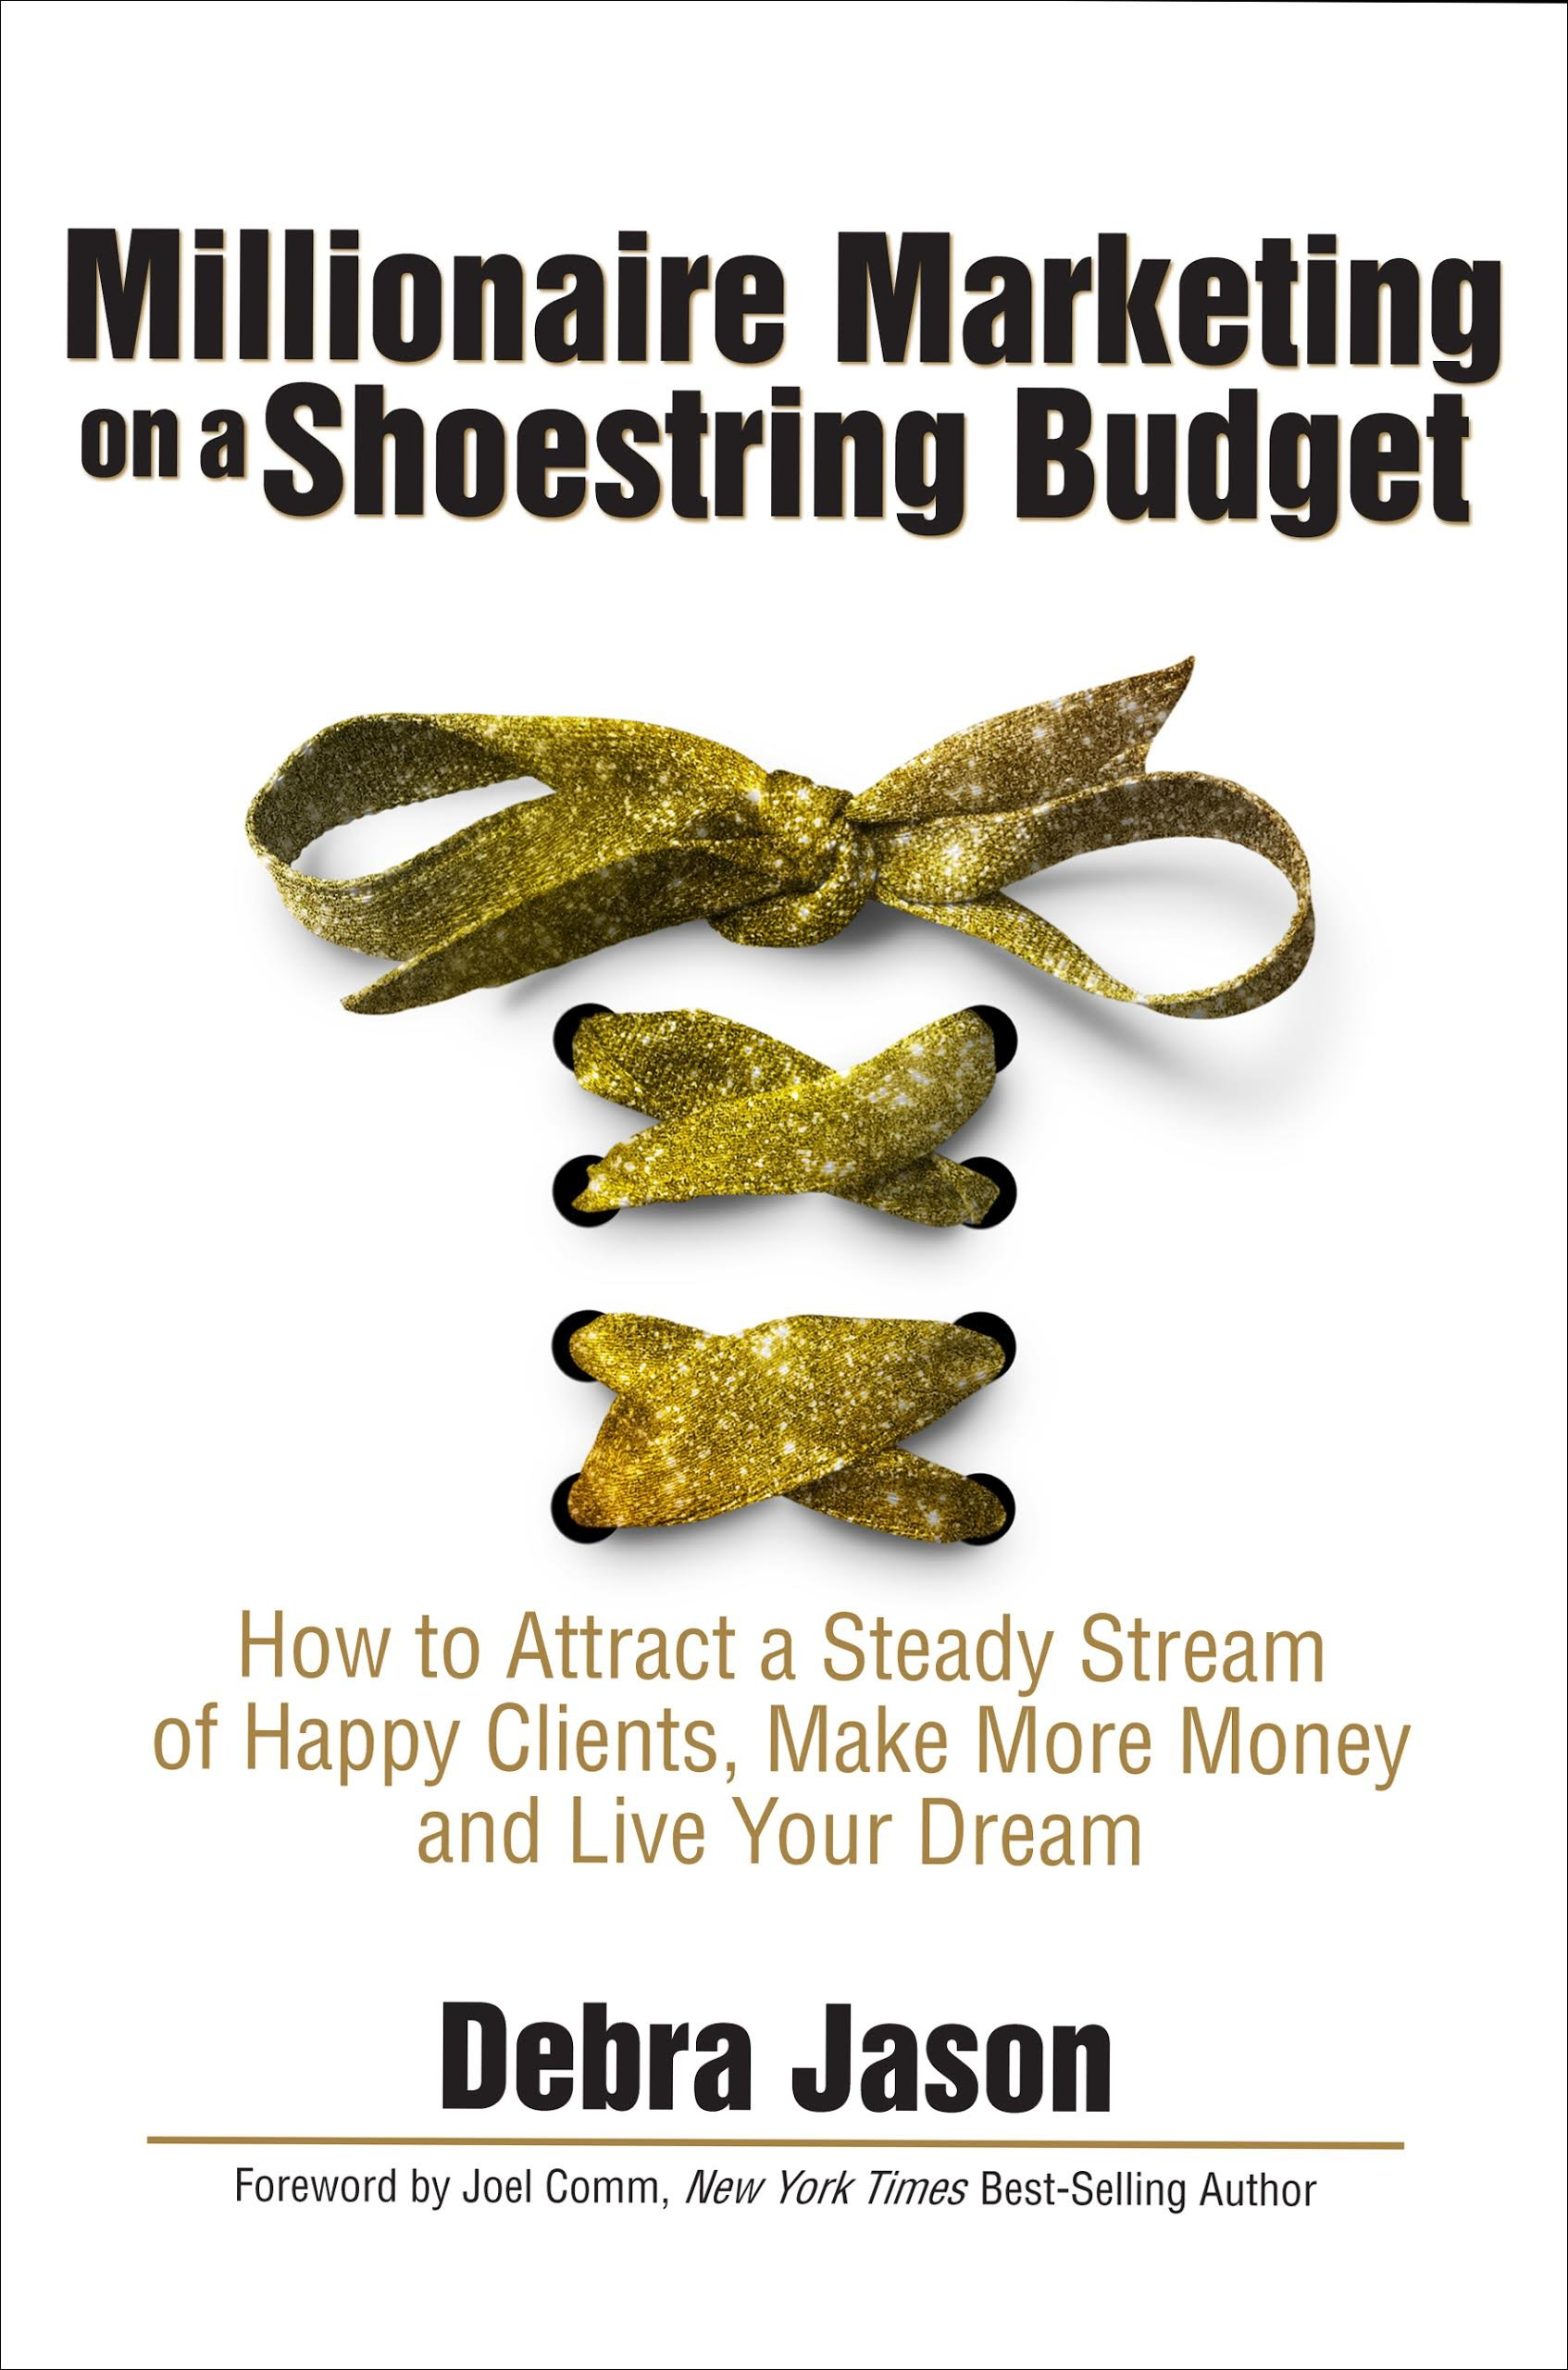 Download Millionaire Marketing on a Shoestring Budget: How to Attract a Steady Stream of Happy Clients, Make More Money and Live Your Dream PDF